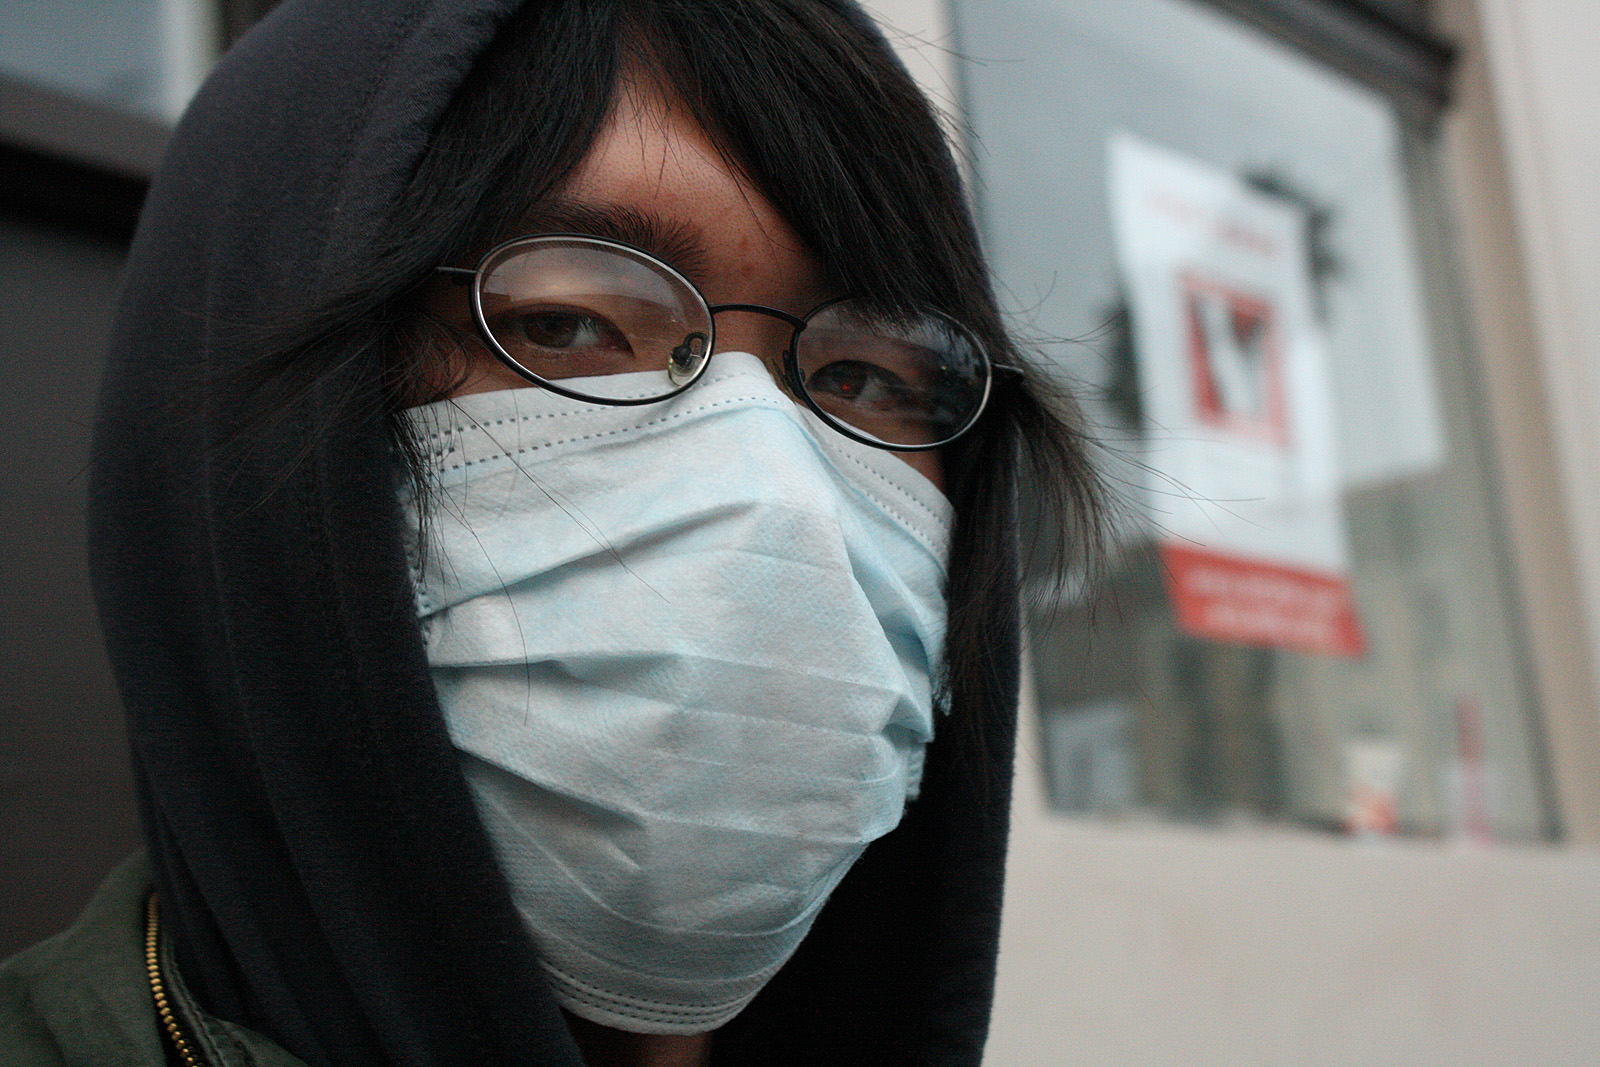 A young man from New York says he does not like the pollution in San Francisco, so he wears a mask.